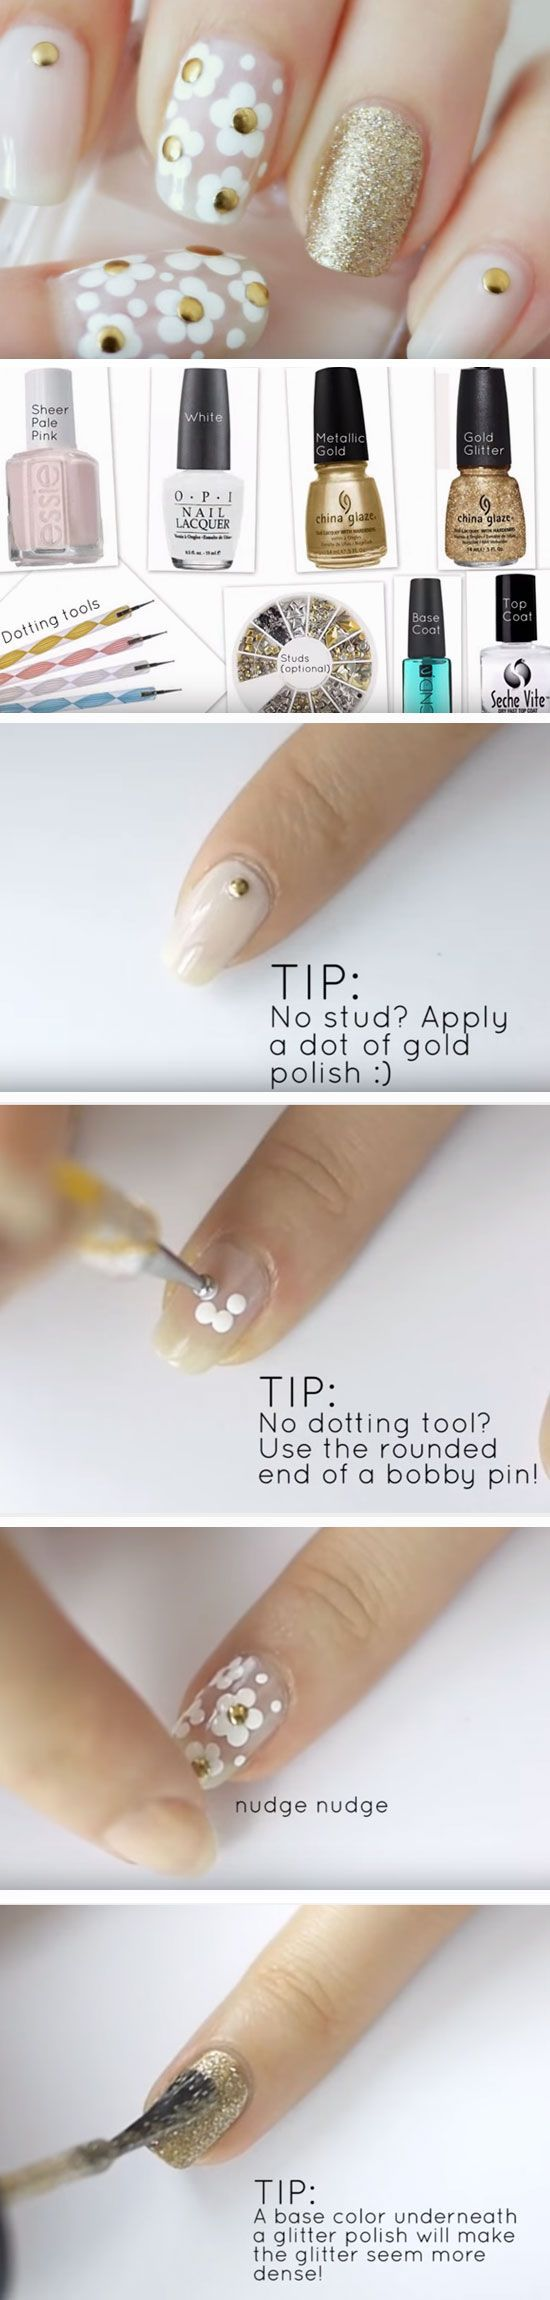 187 best Nails images on Pinterest | Fingernail designs, Nail design ...